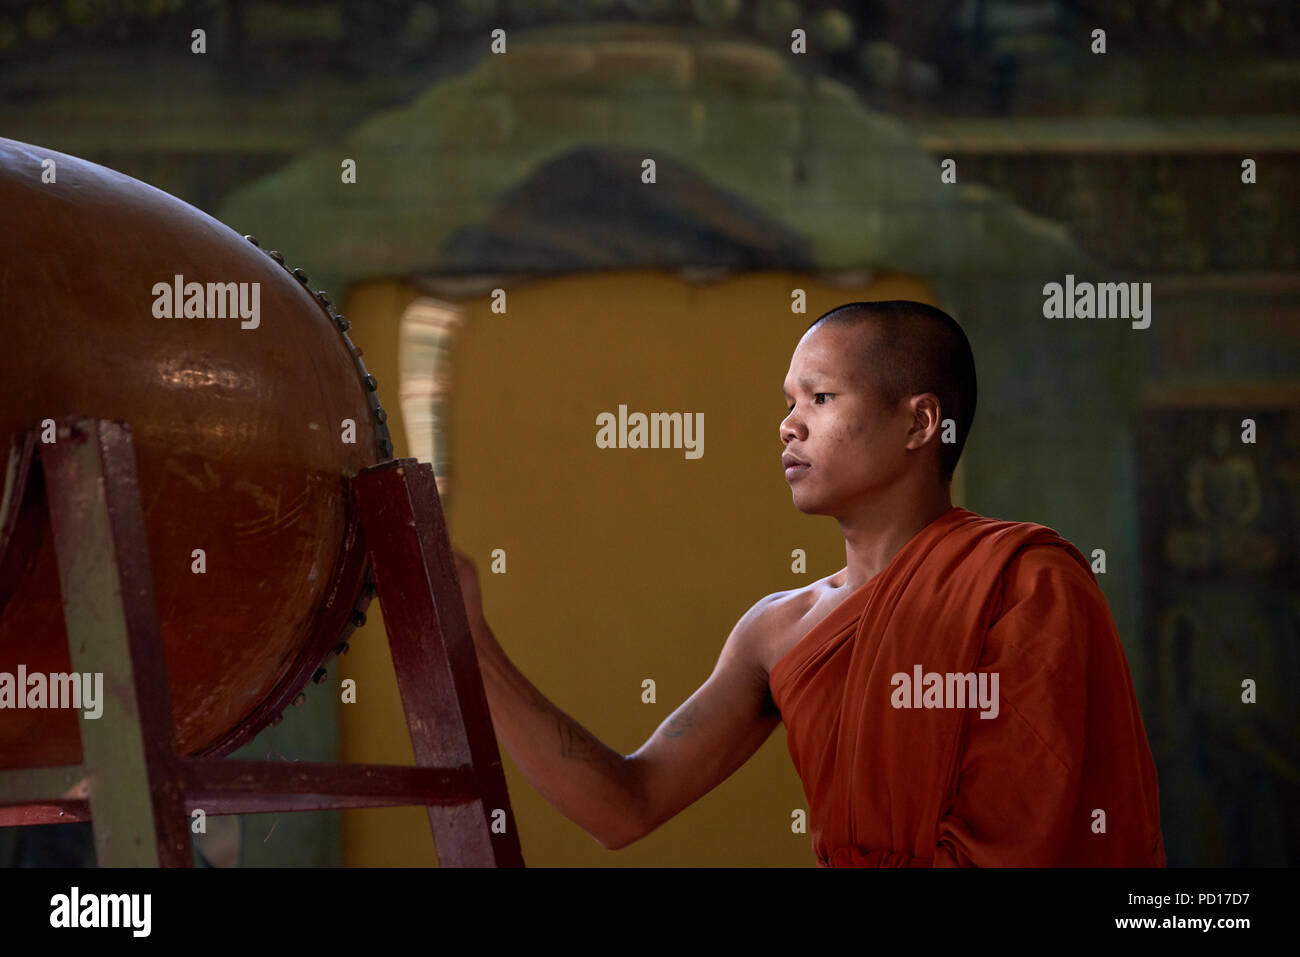 A young Buddhist monk playing a tambour during a ceremony at a monastery in Siem Reap, Cambodia. - Stock Image